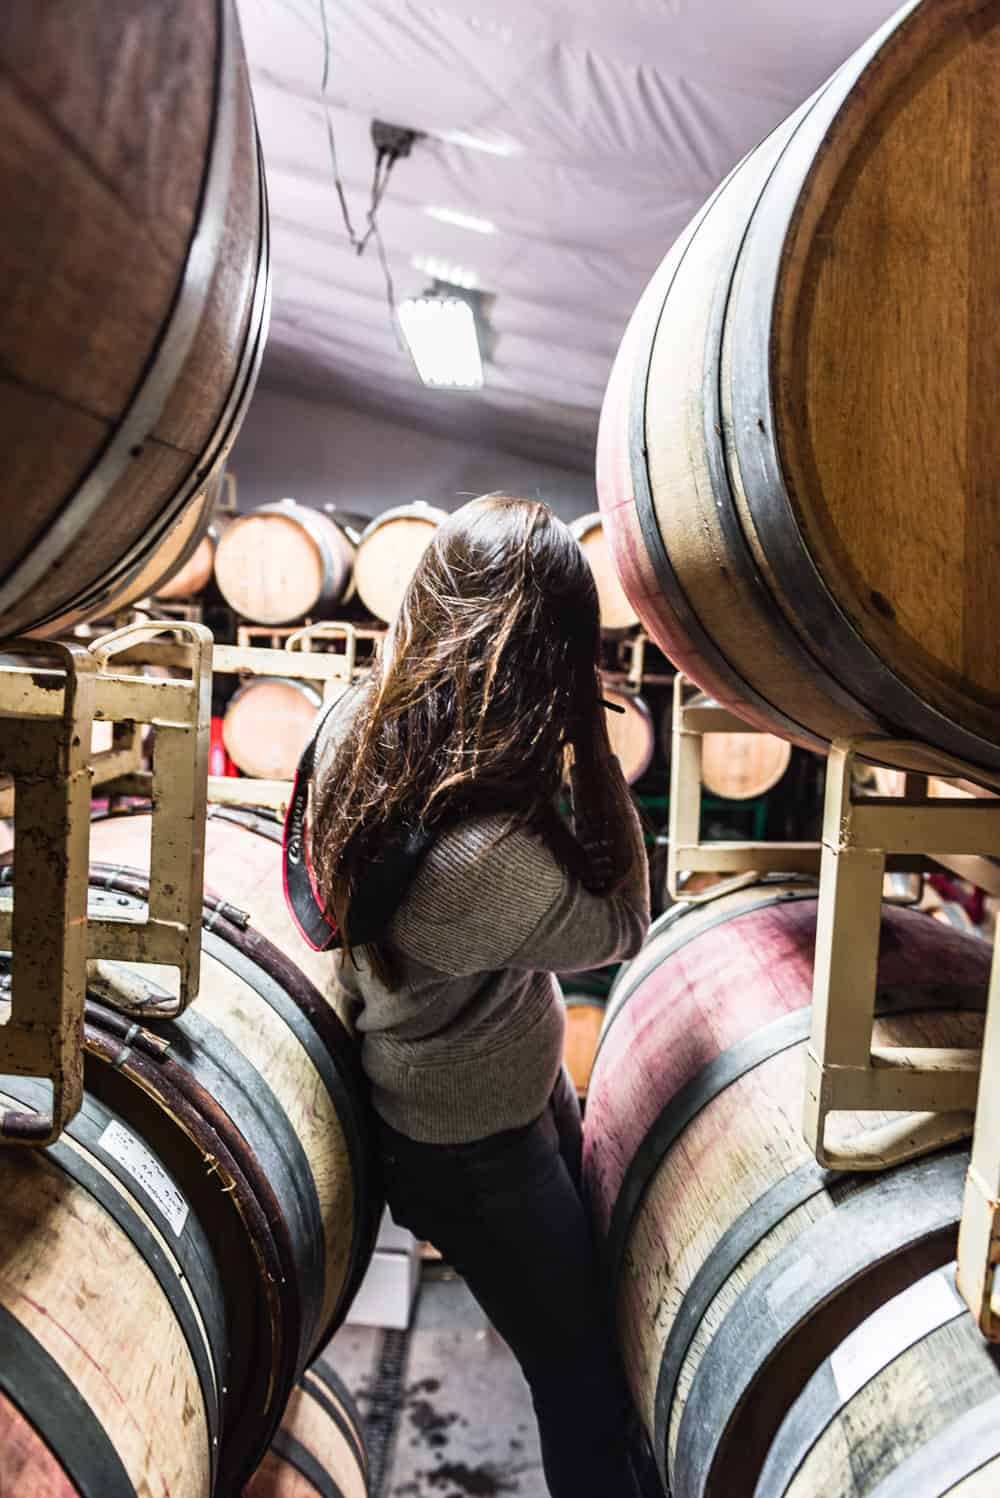 Behind the scenes shot of me taking pictures in Davero's biodynamic farm and winery barrel room.